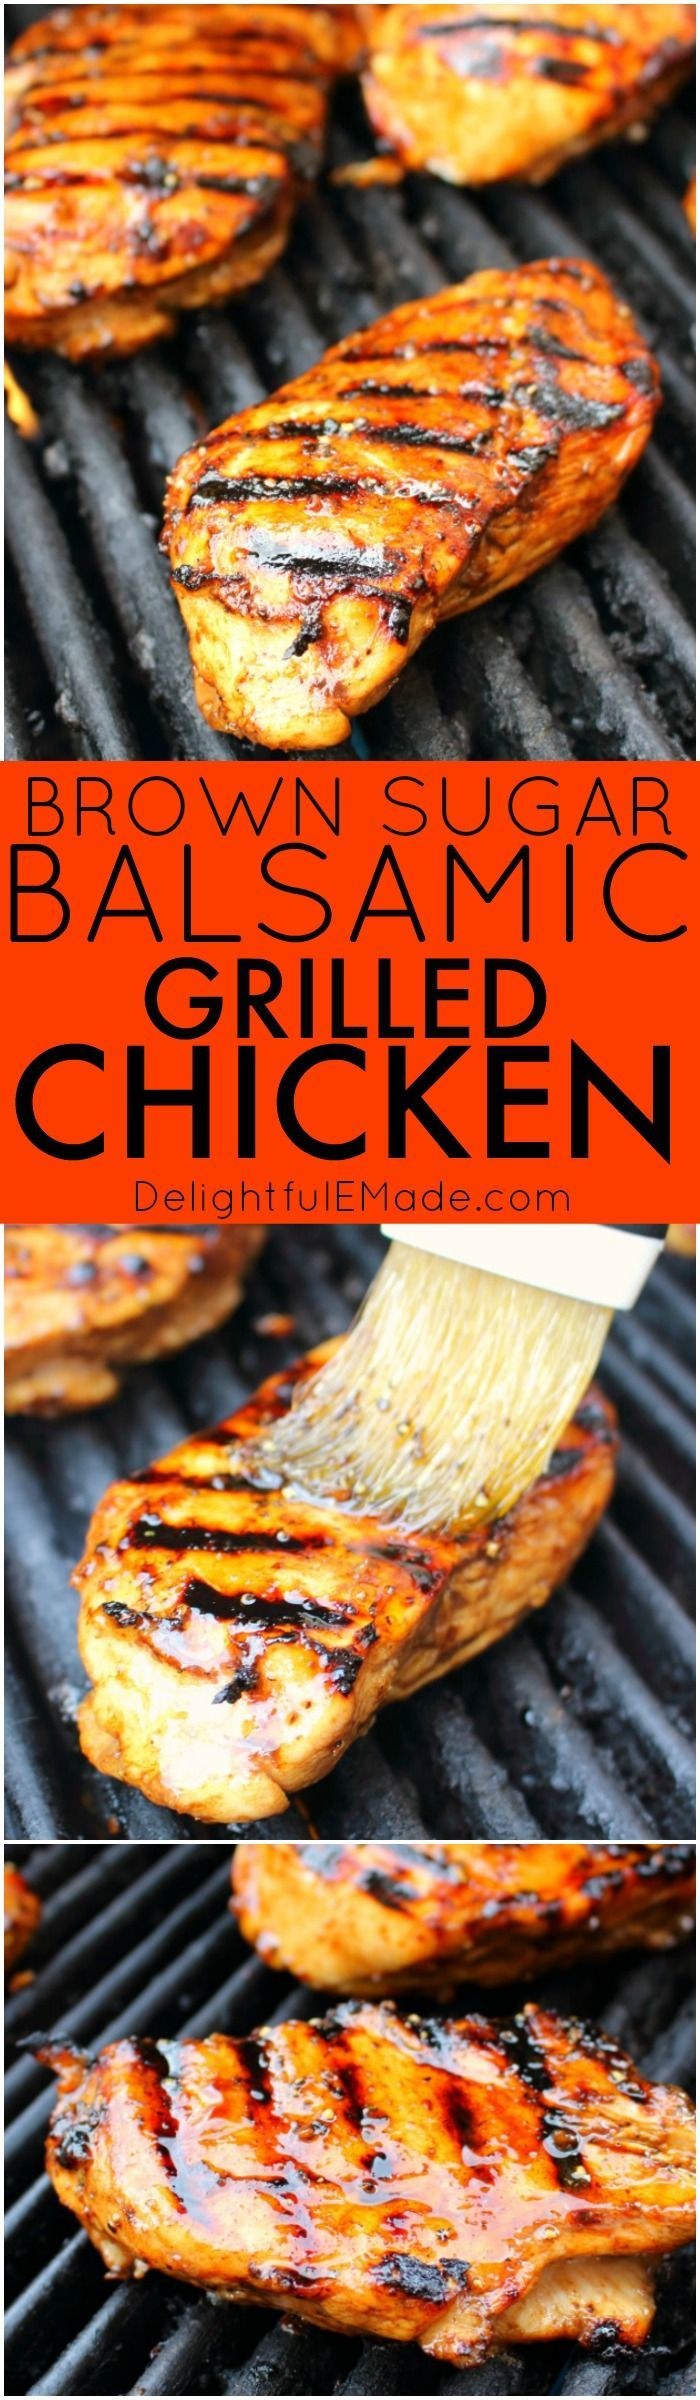 This super simple balsamic grilled chicken will be your new favorite dinner idea!  Made with a 5-ingredient brown sugar marinade, this grilled chicken recipe is done and on the table in under 20 minutes!